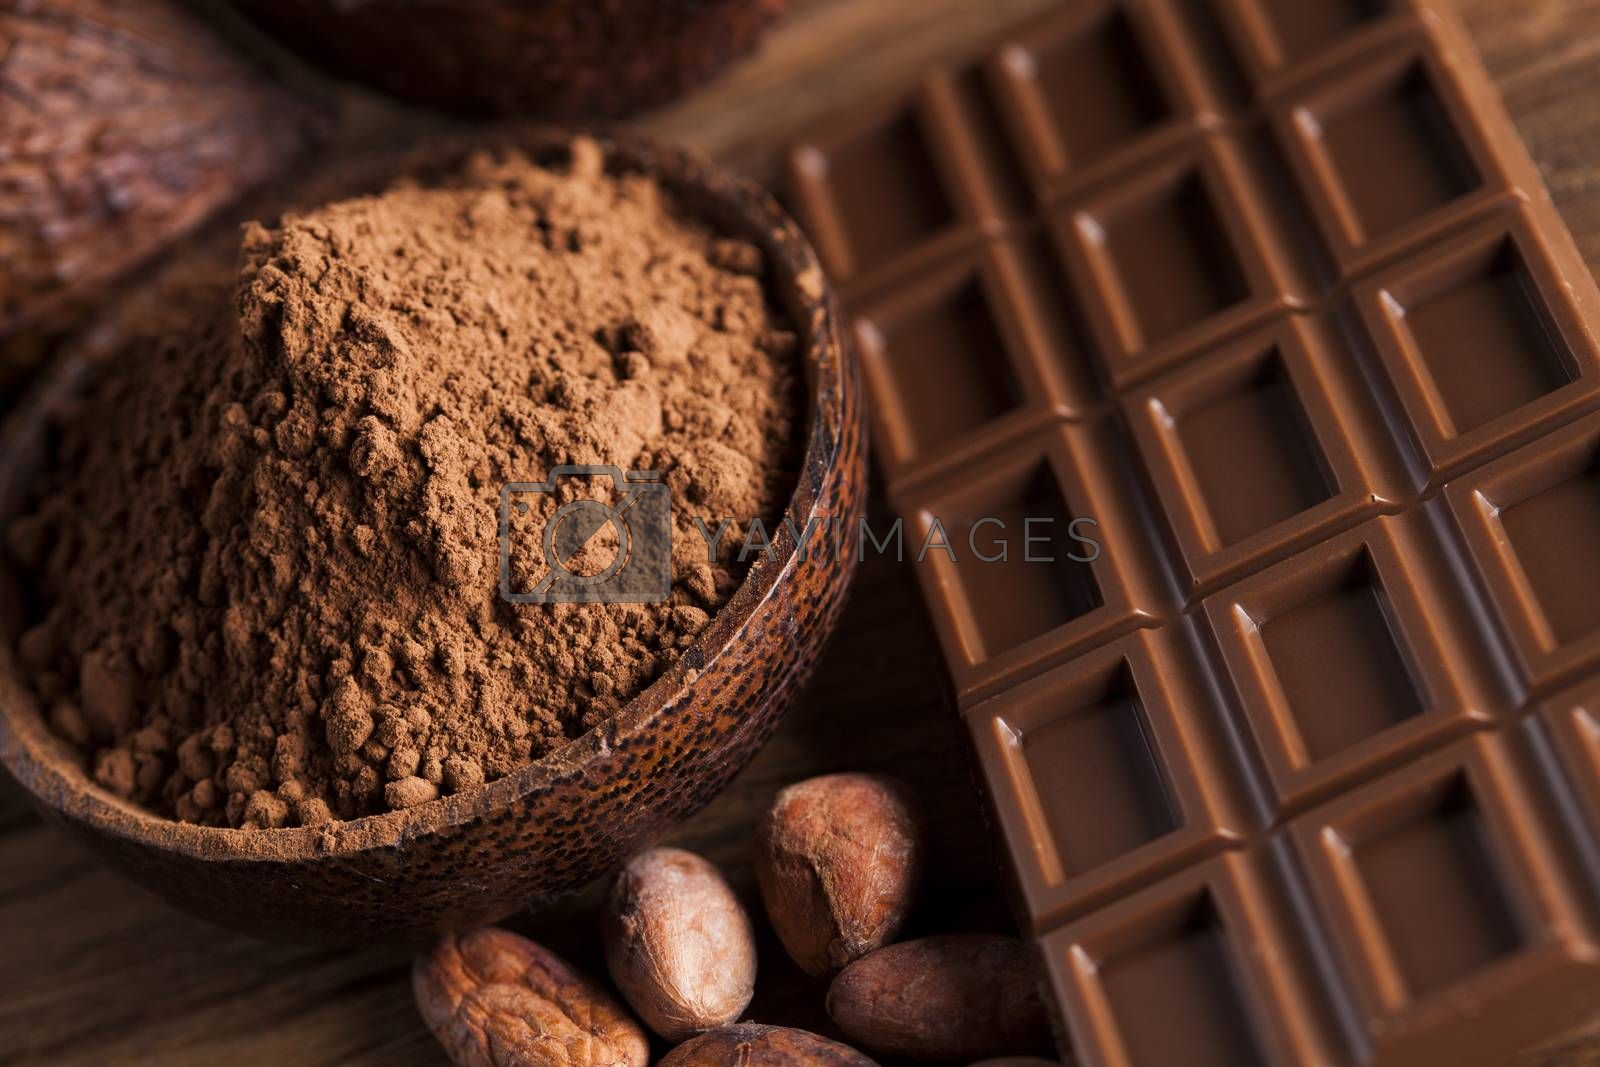 Royalty free image of Chocolate sweet, cocoa and food dessert background by JanPietruszka